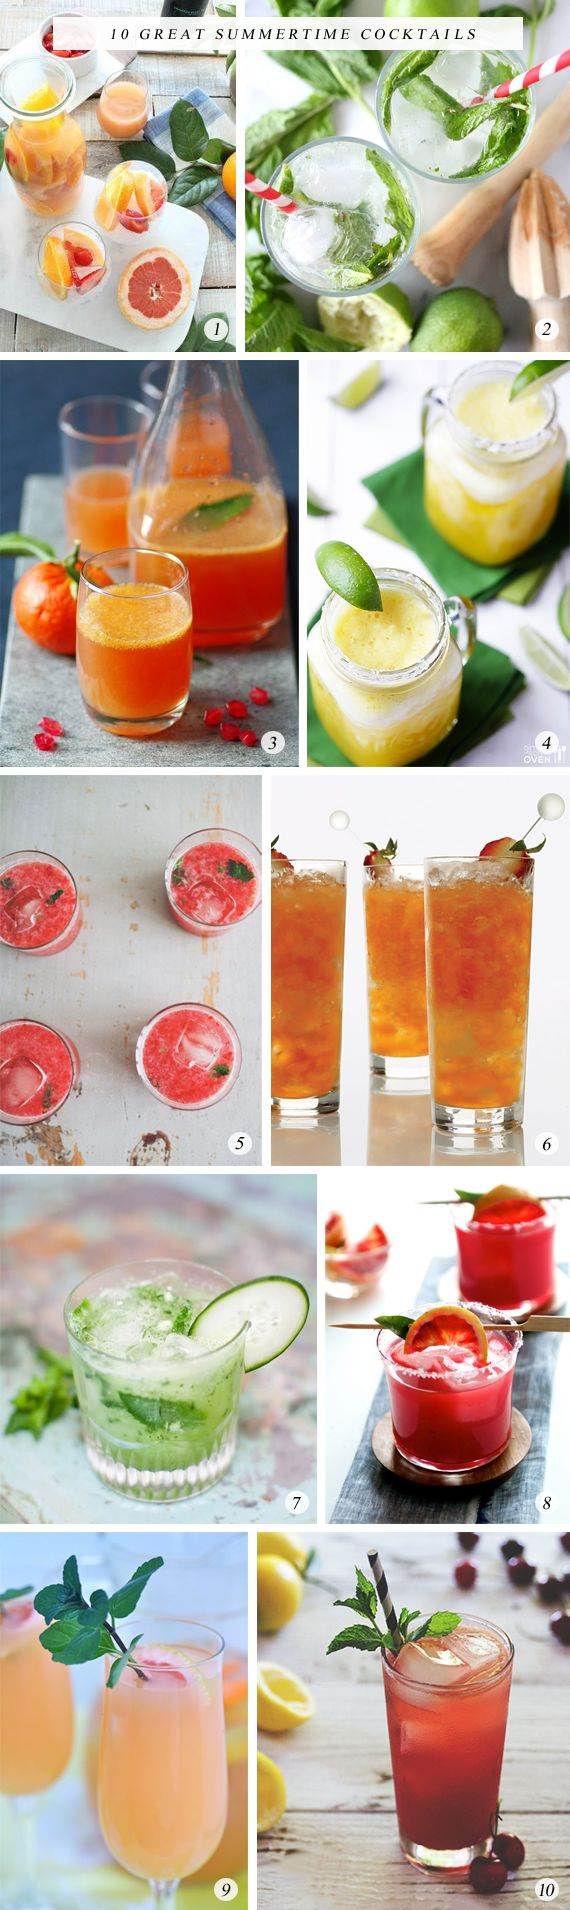 10 Great Summertime Cocktails - Bubby and Bean